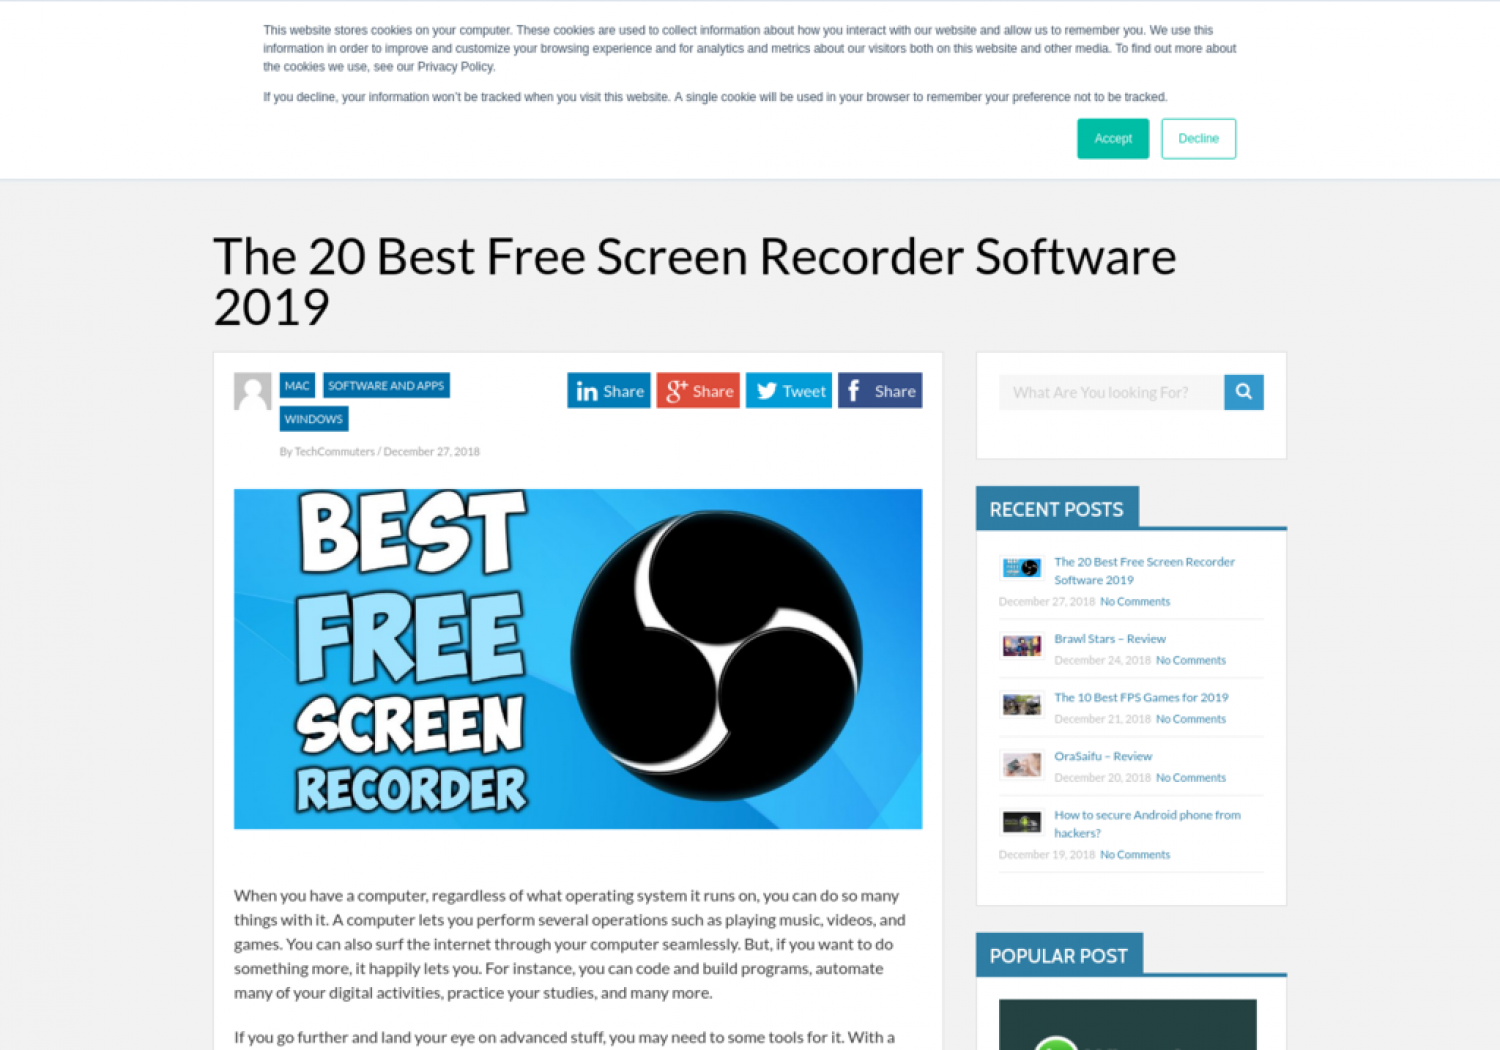 The 20 Best Free Screen Recorder Software 2019 Infographic